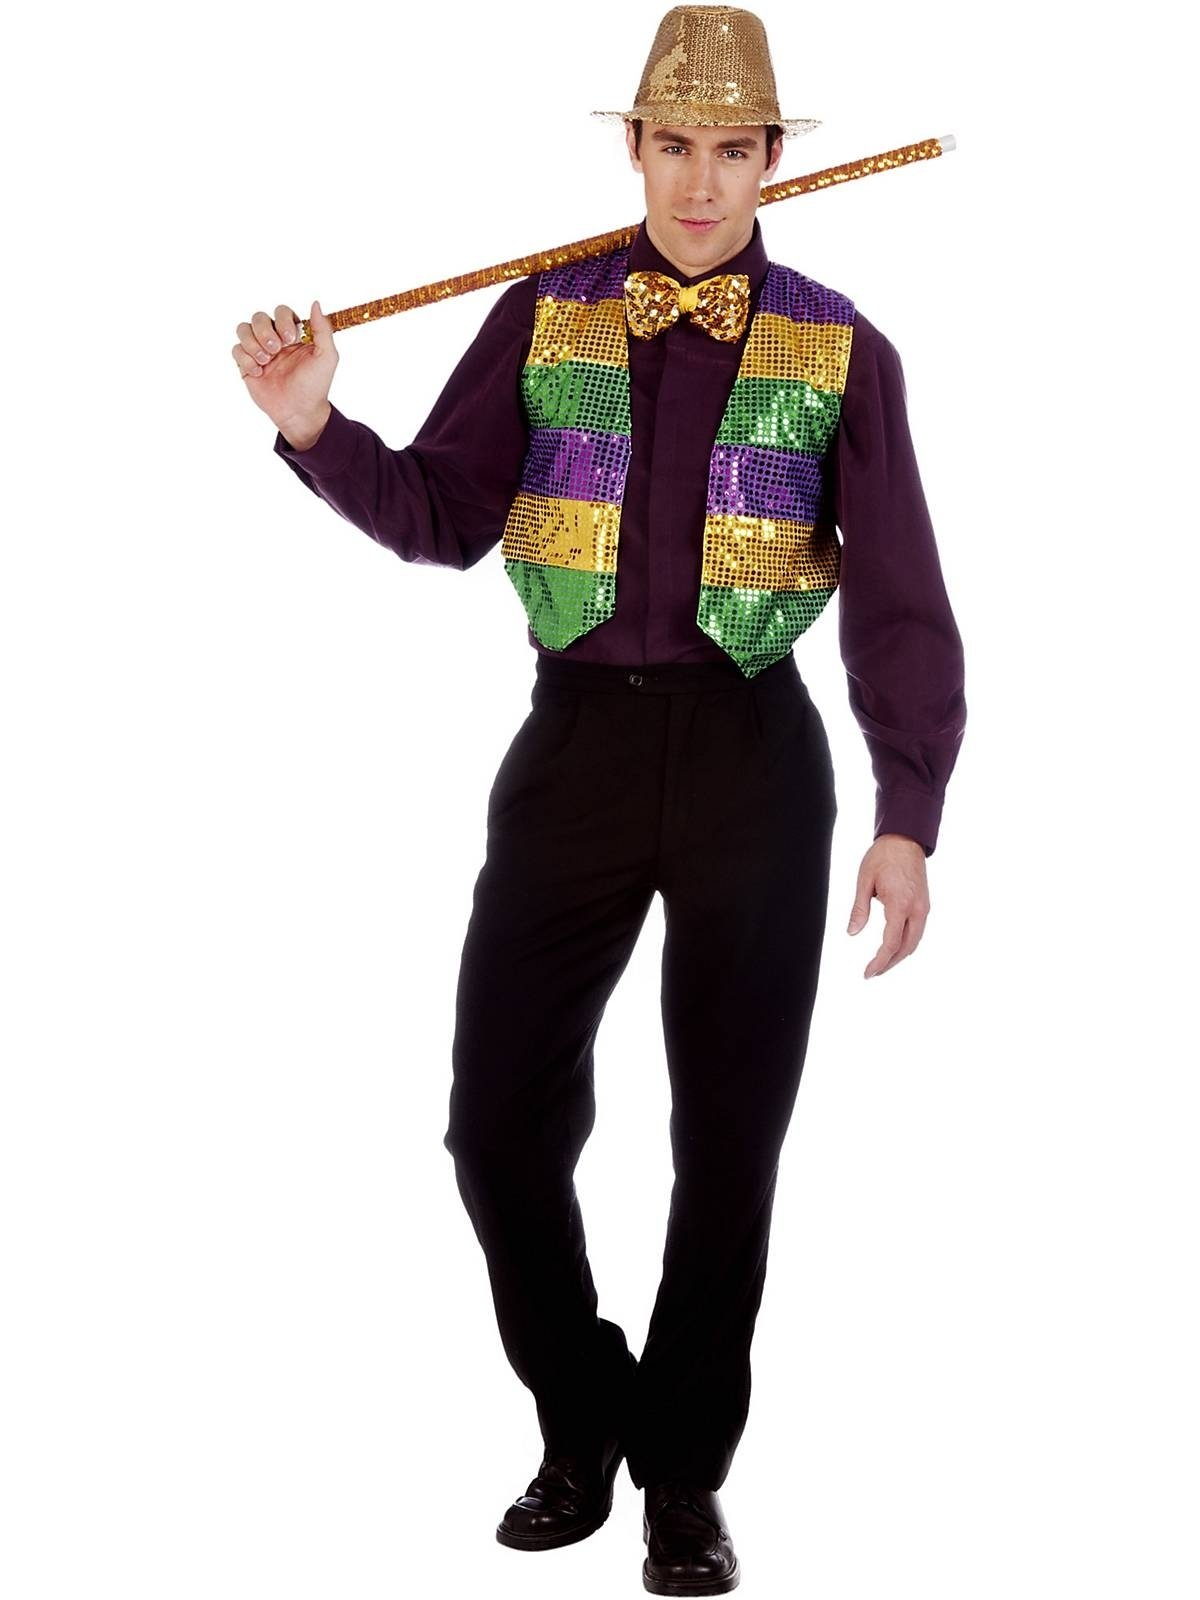 10 Awesome Mardi Gras Dress Up Ideas mardi gras vest costume mardi gras sequins and costumes 1 2020